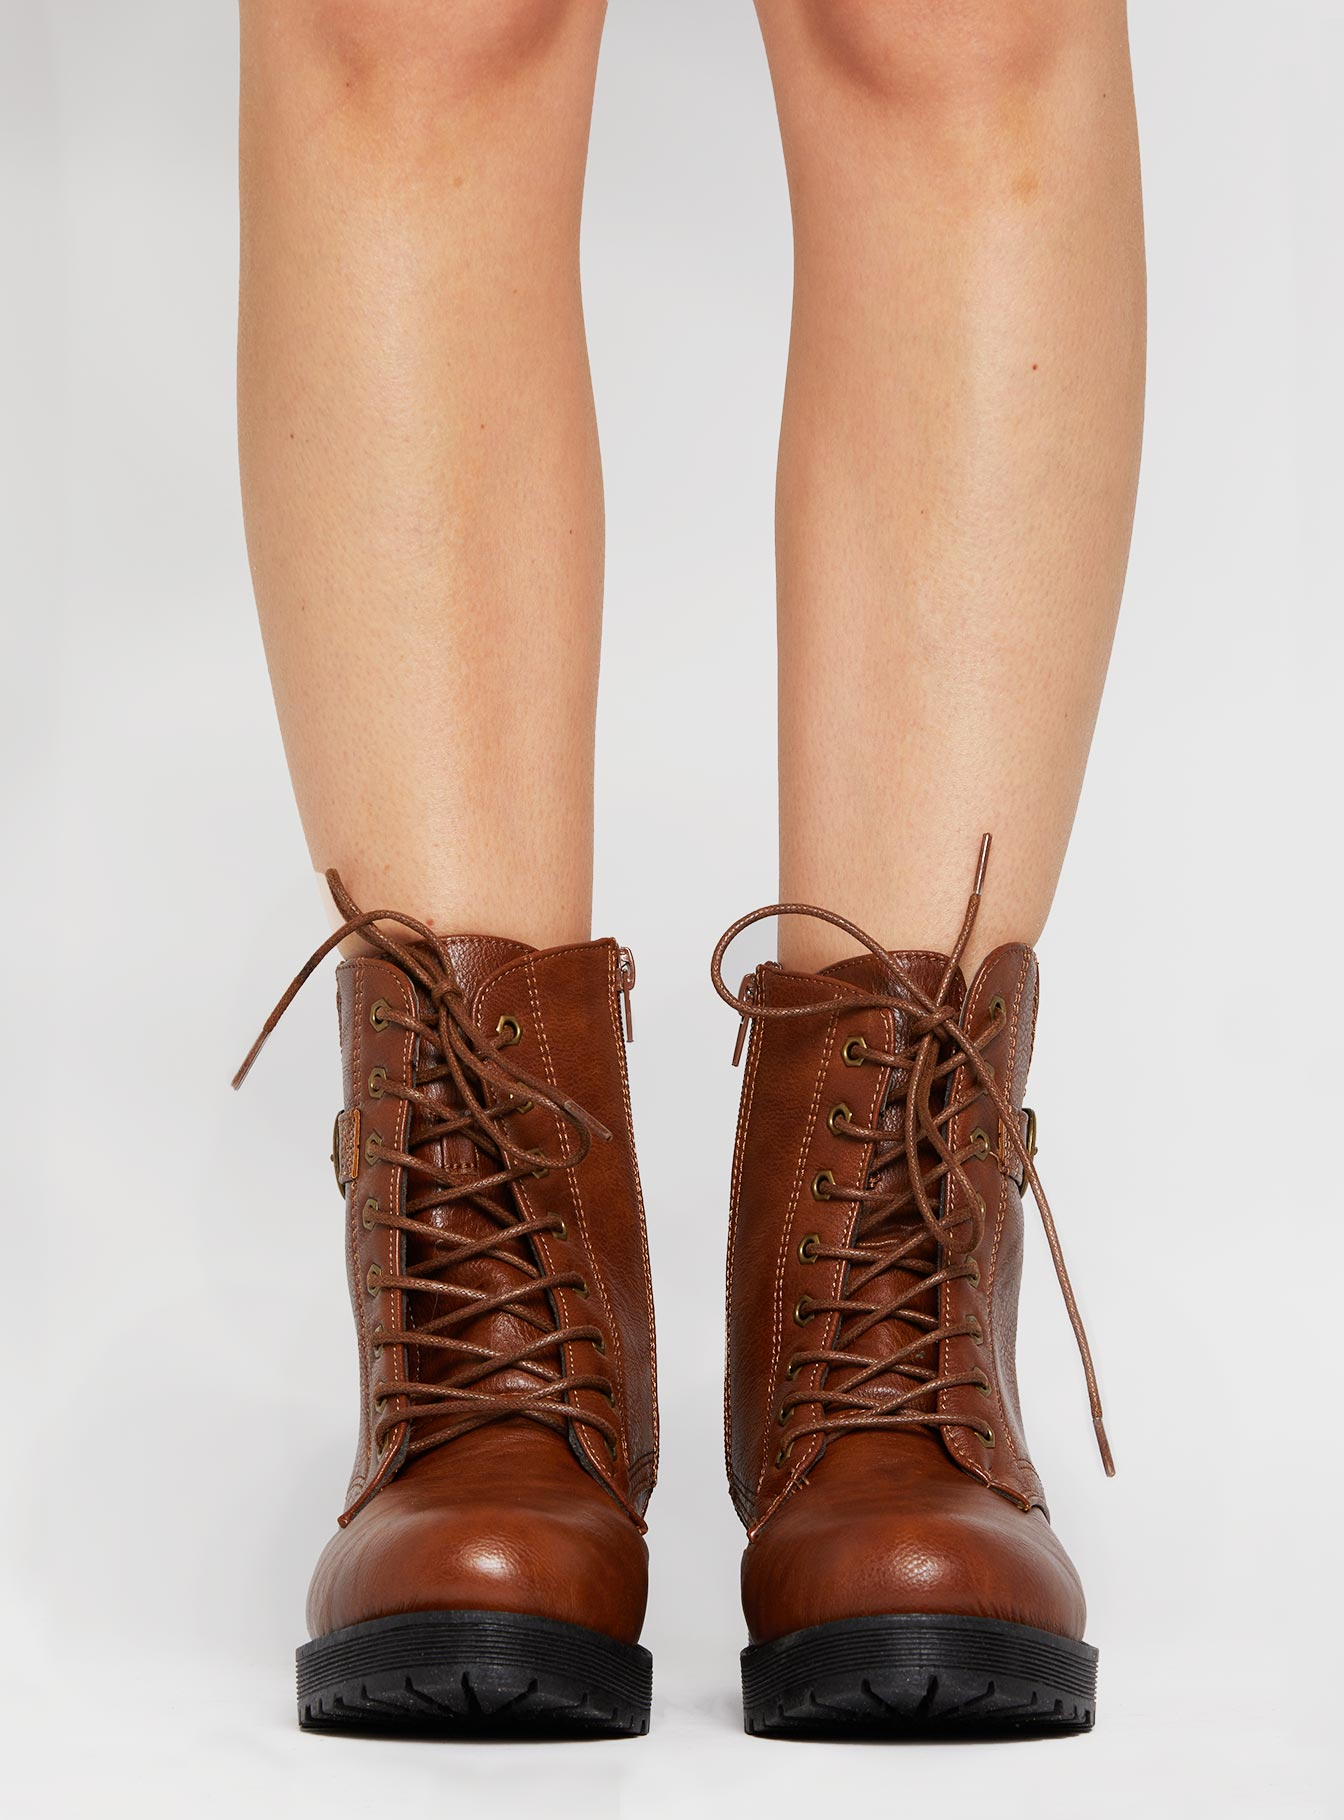 Sebrina Combat Boot Brown